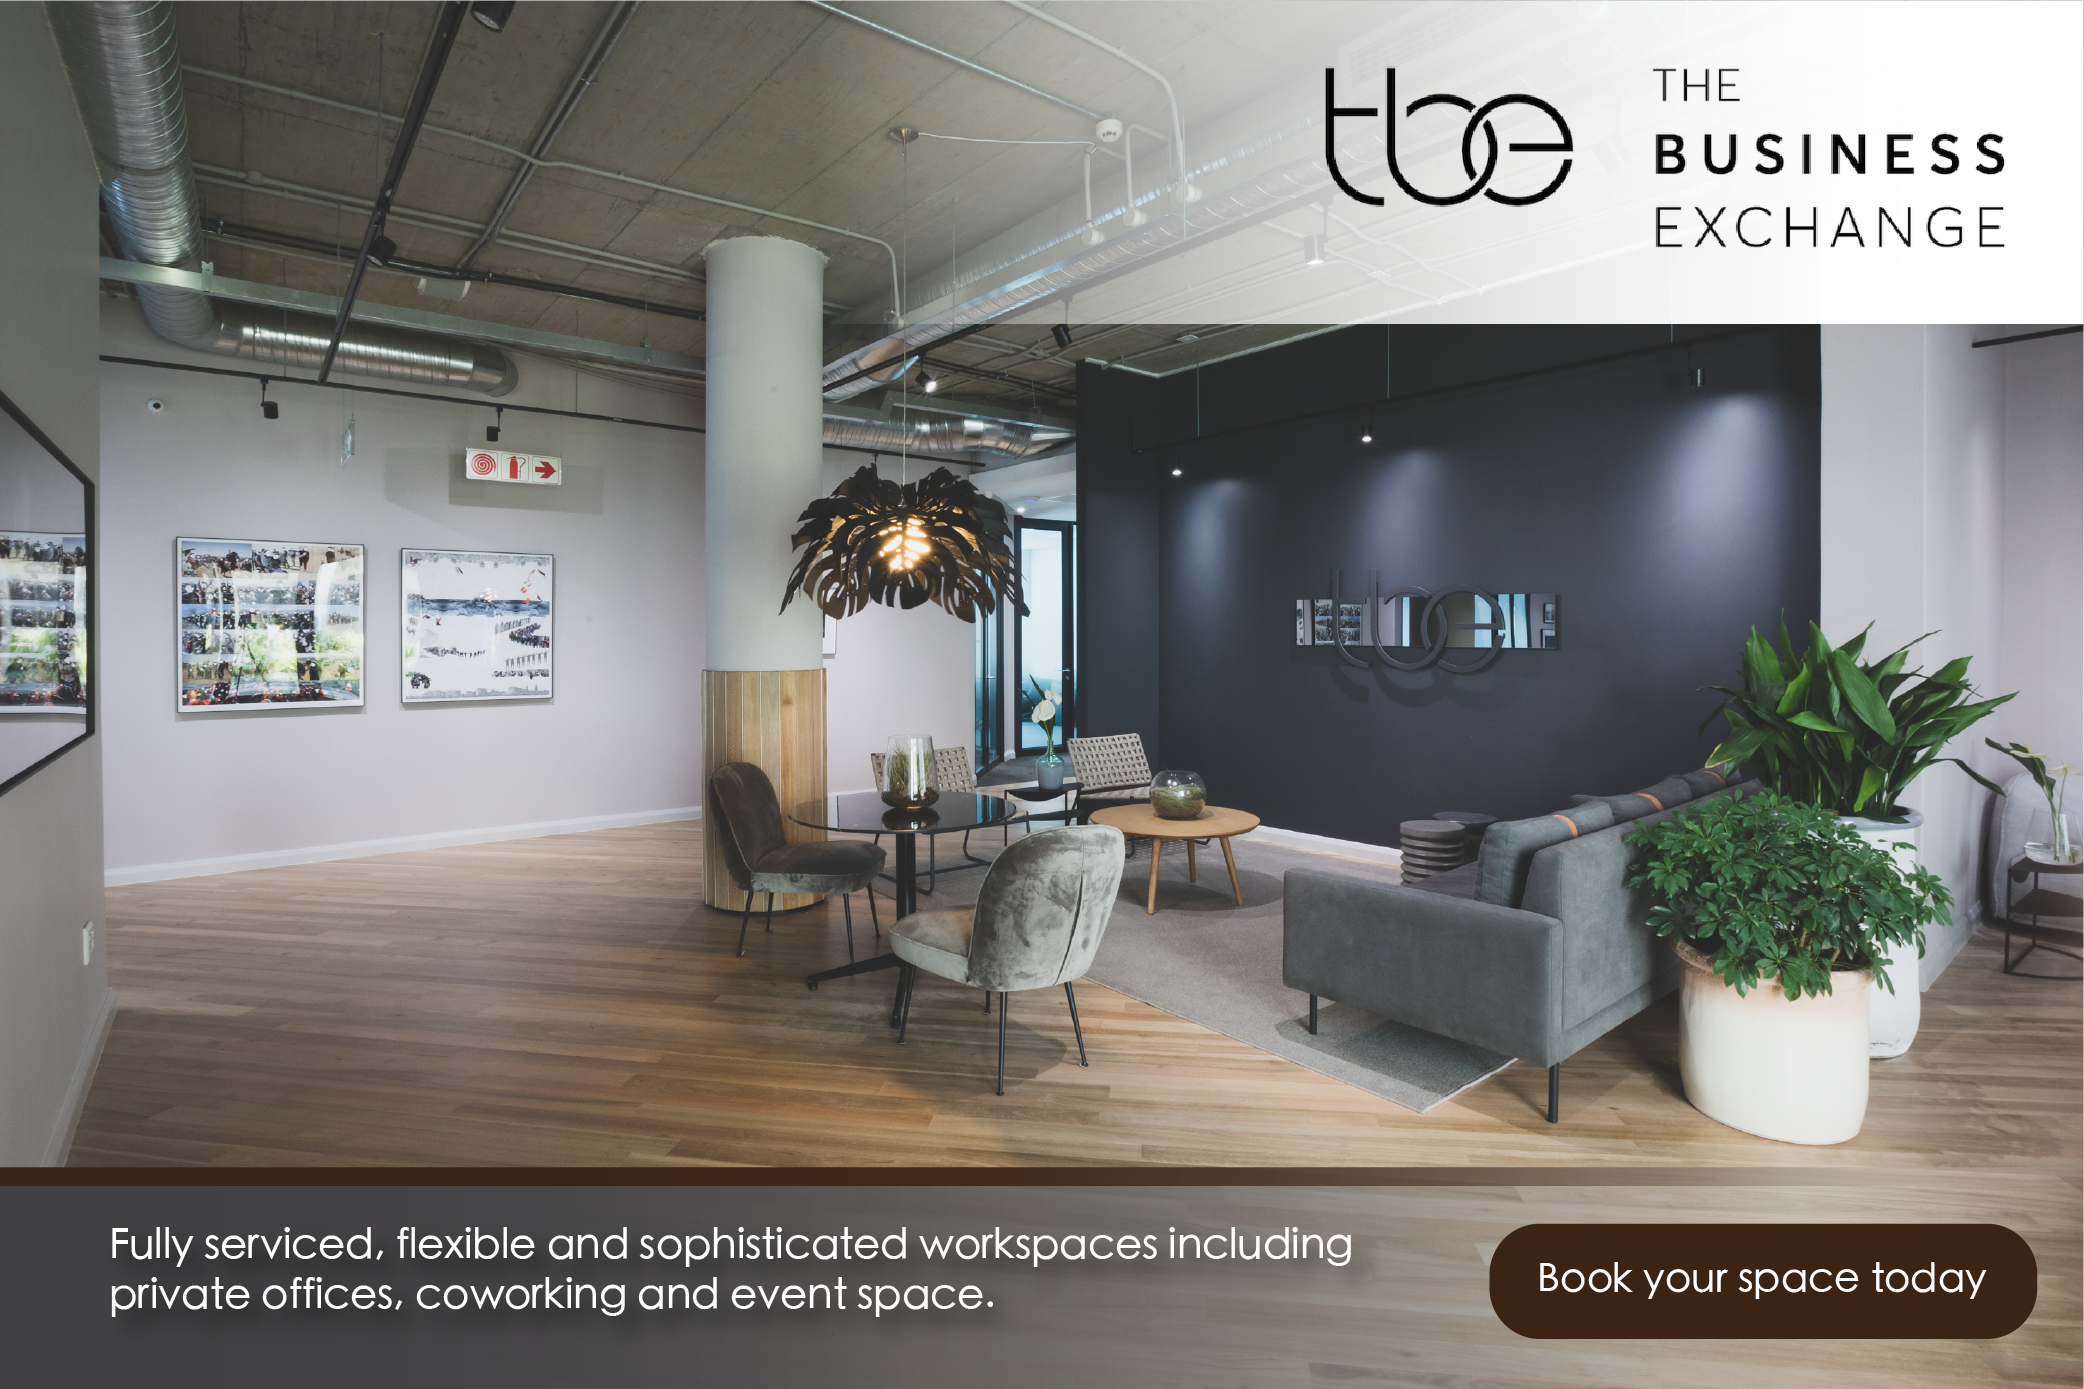 TBE - The Business Exchange